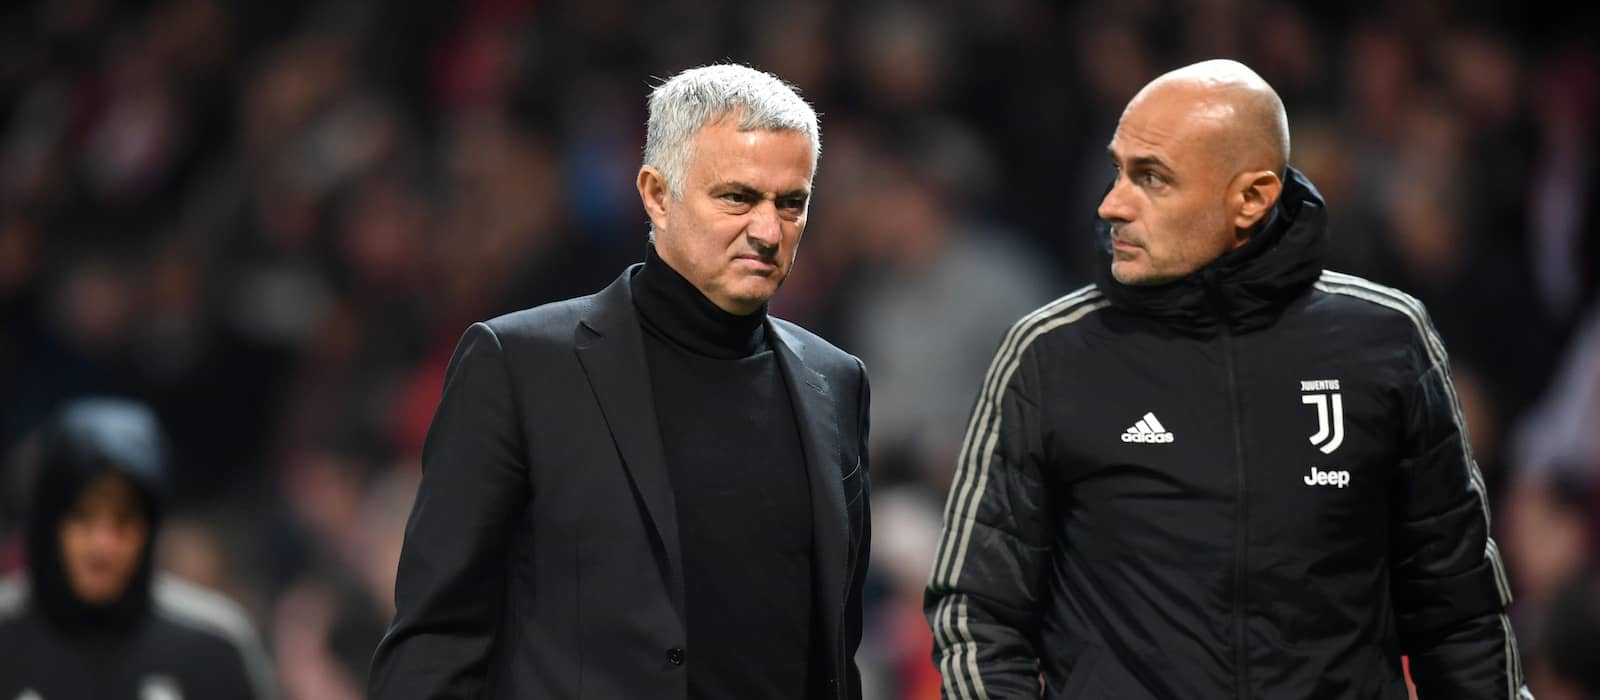 Jose Mourinho: Juventus taught Manchester United how to defend